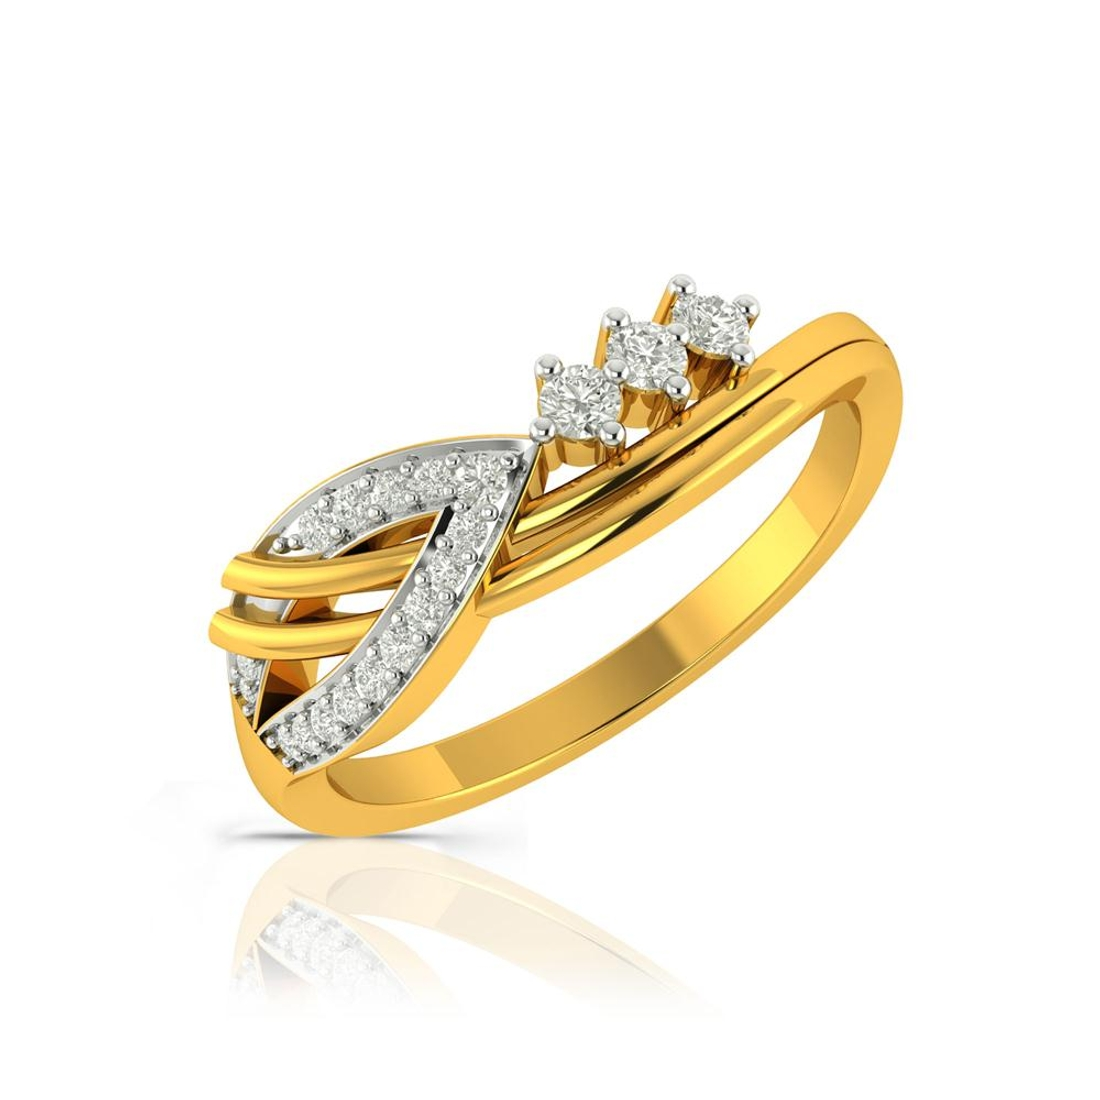 Buy Charu Jewels Diamond Ladies Ring CJLR0493 Online in India